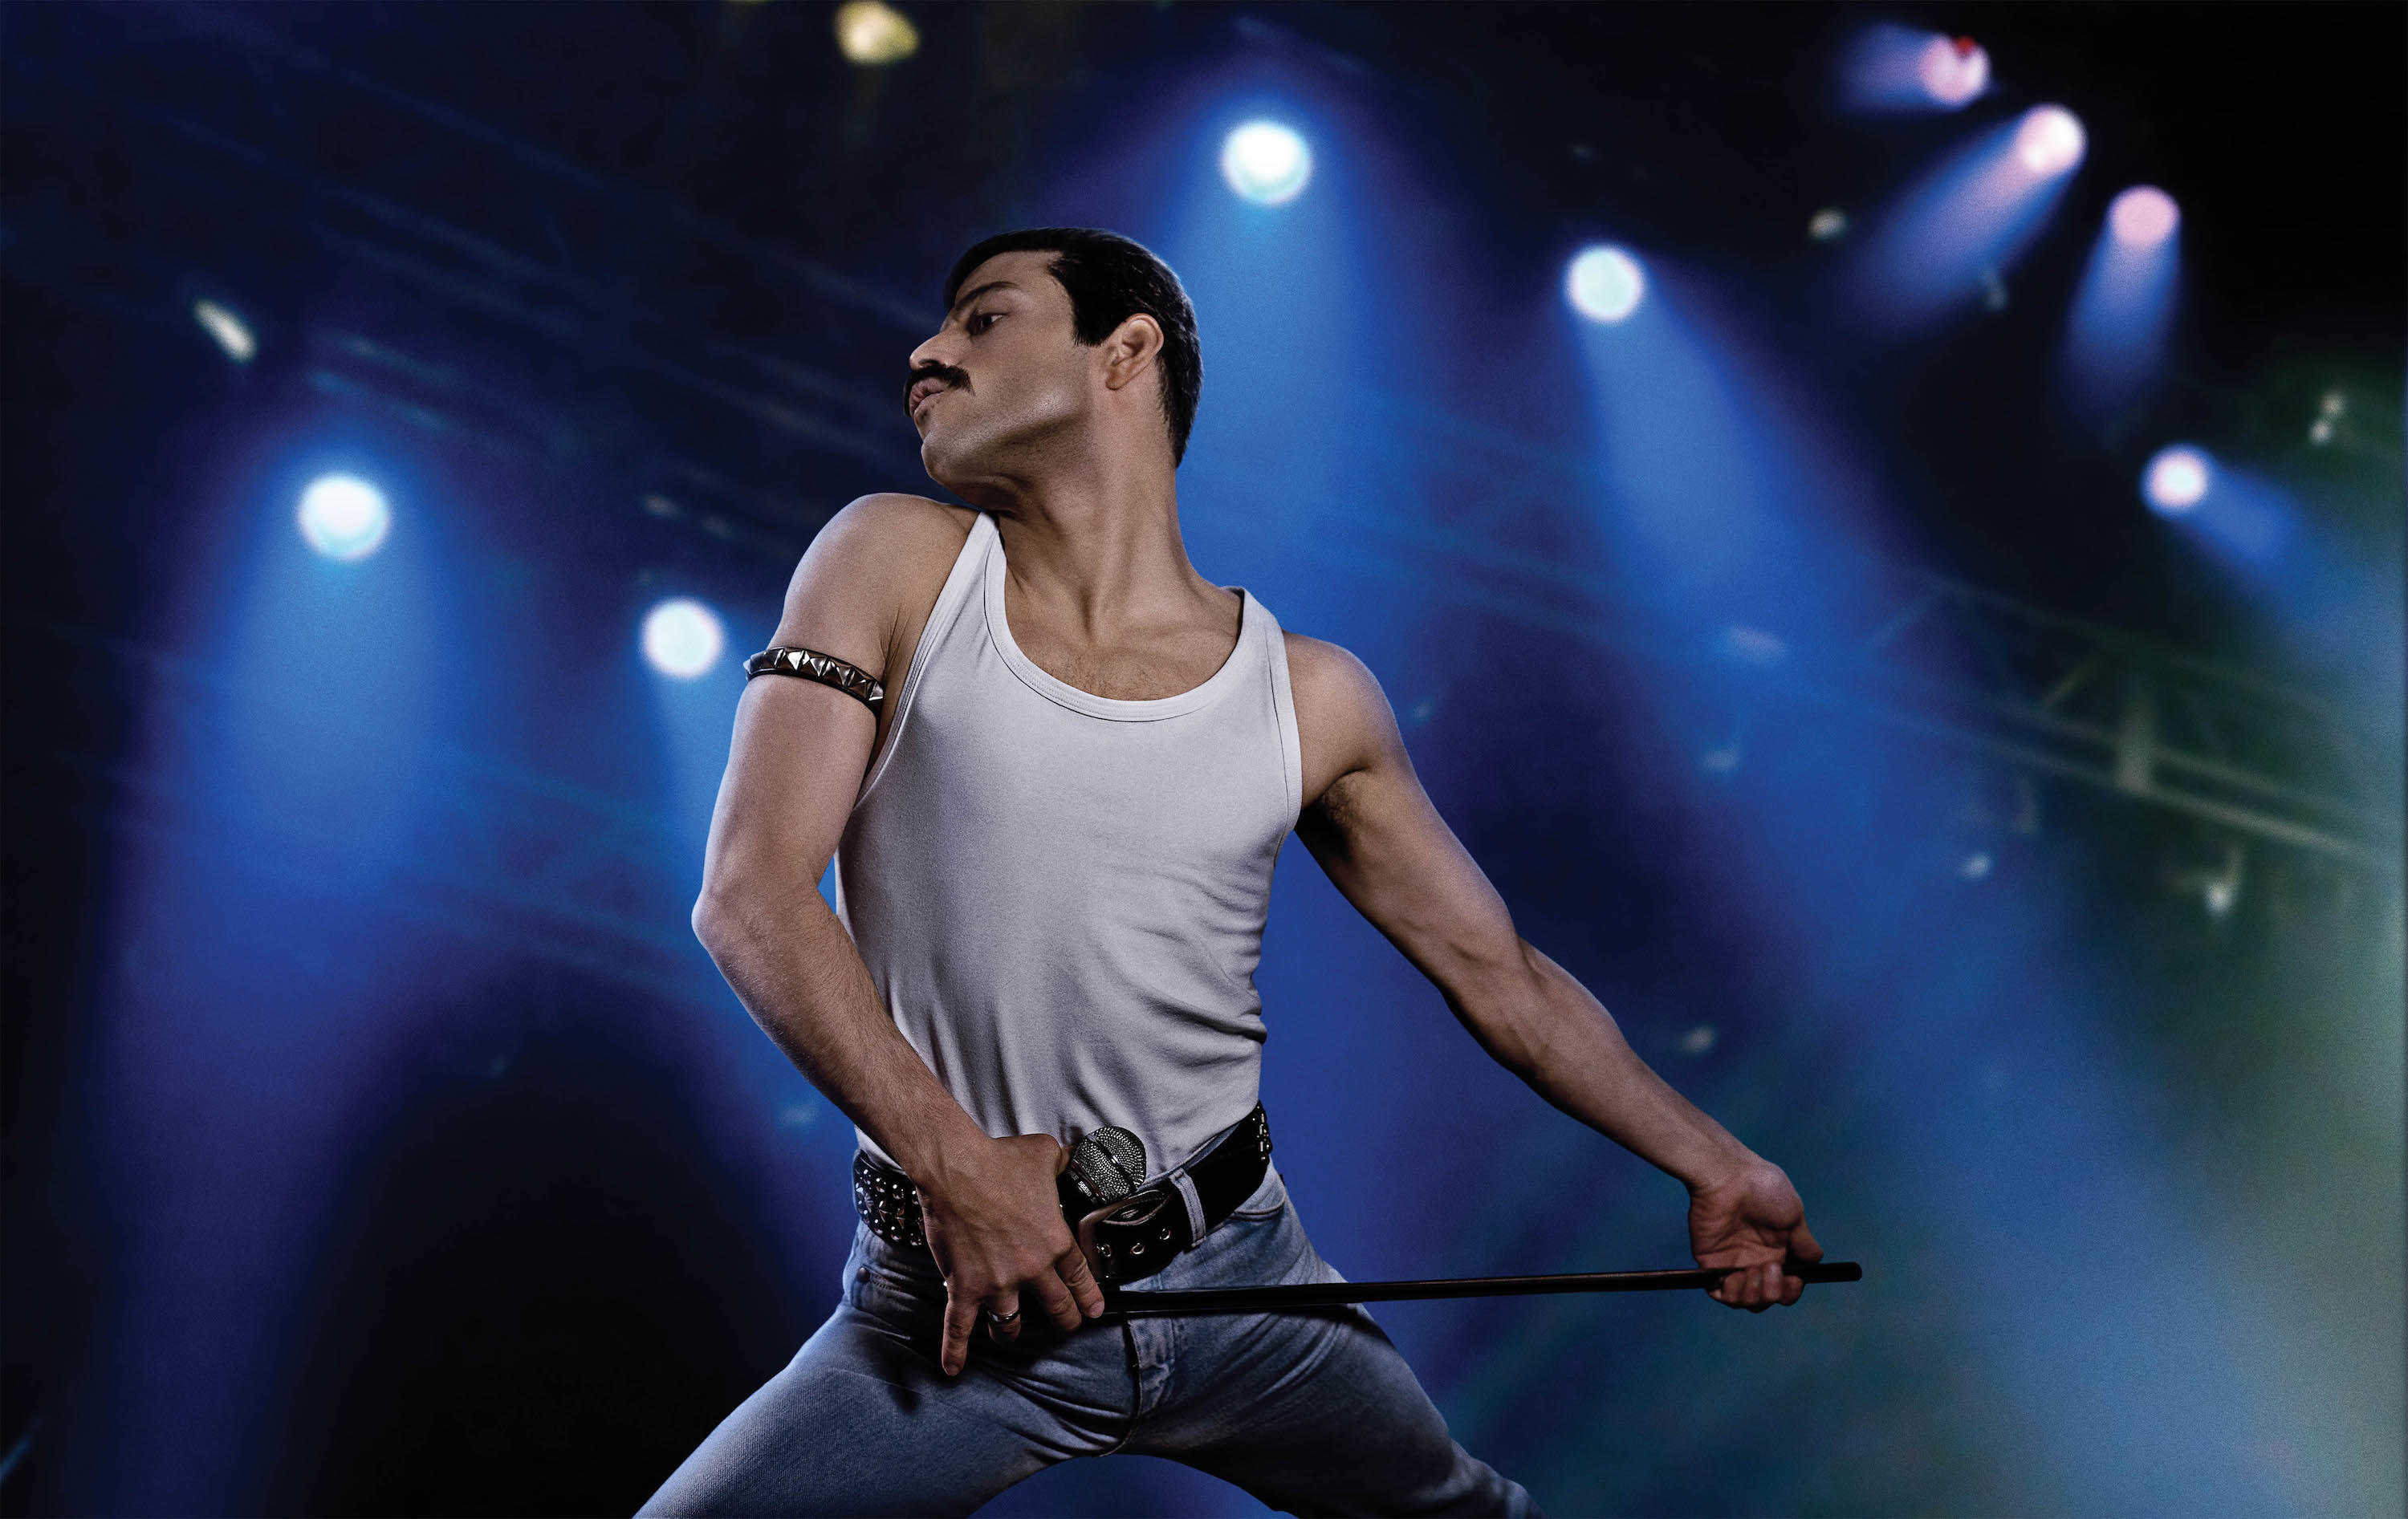 bohemian-rhapsody-movie-queen-rami-malek-7